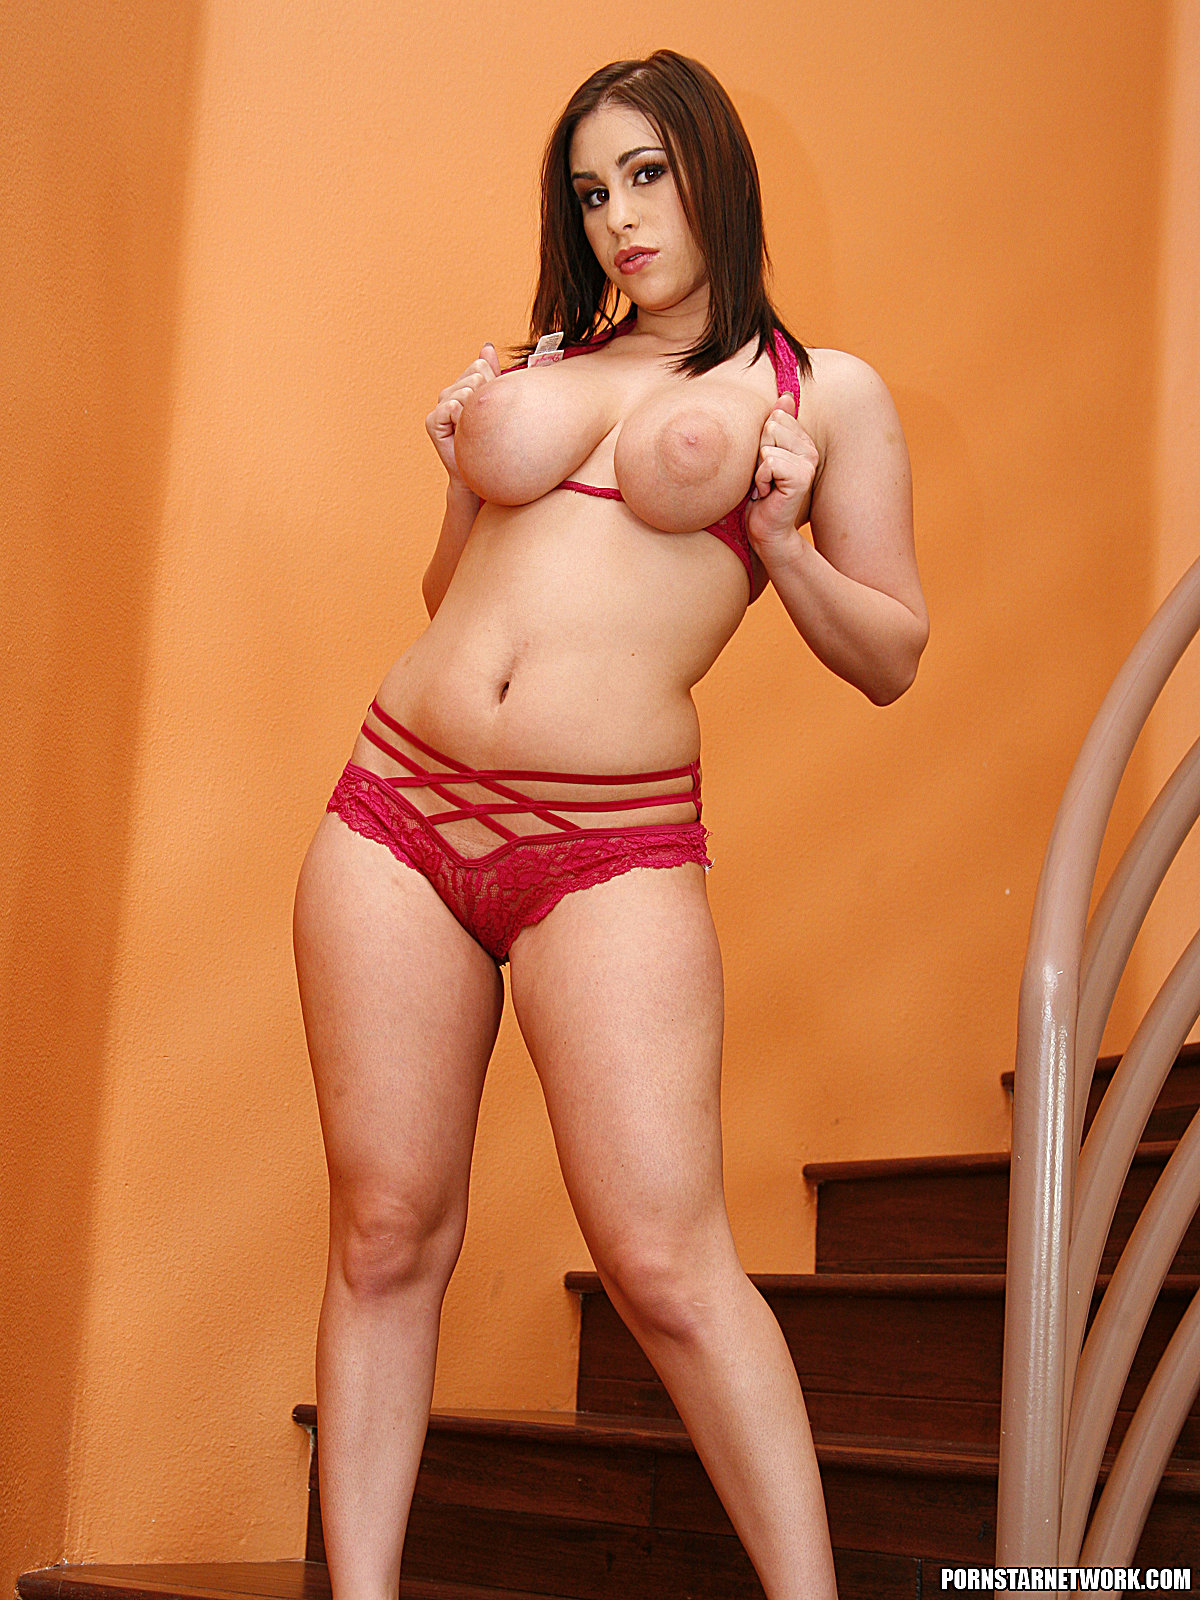 Gianna michaels on private party - 3 10